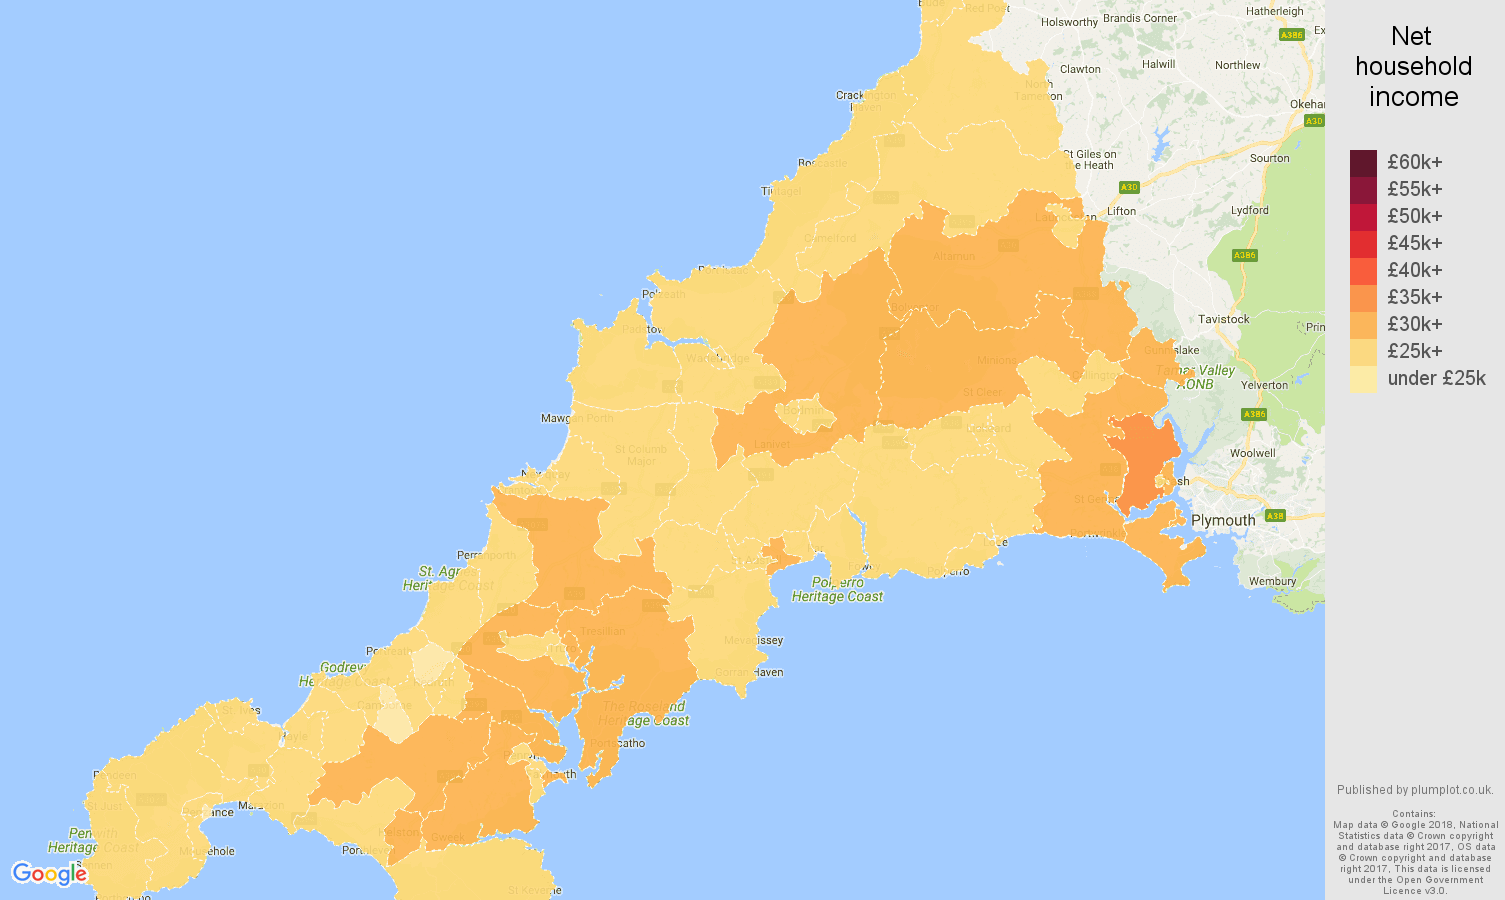 Cornwall net household income map